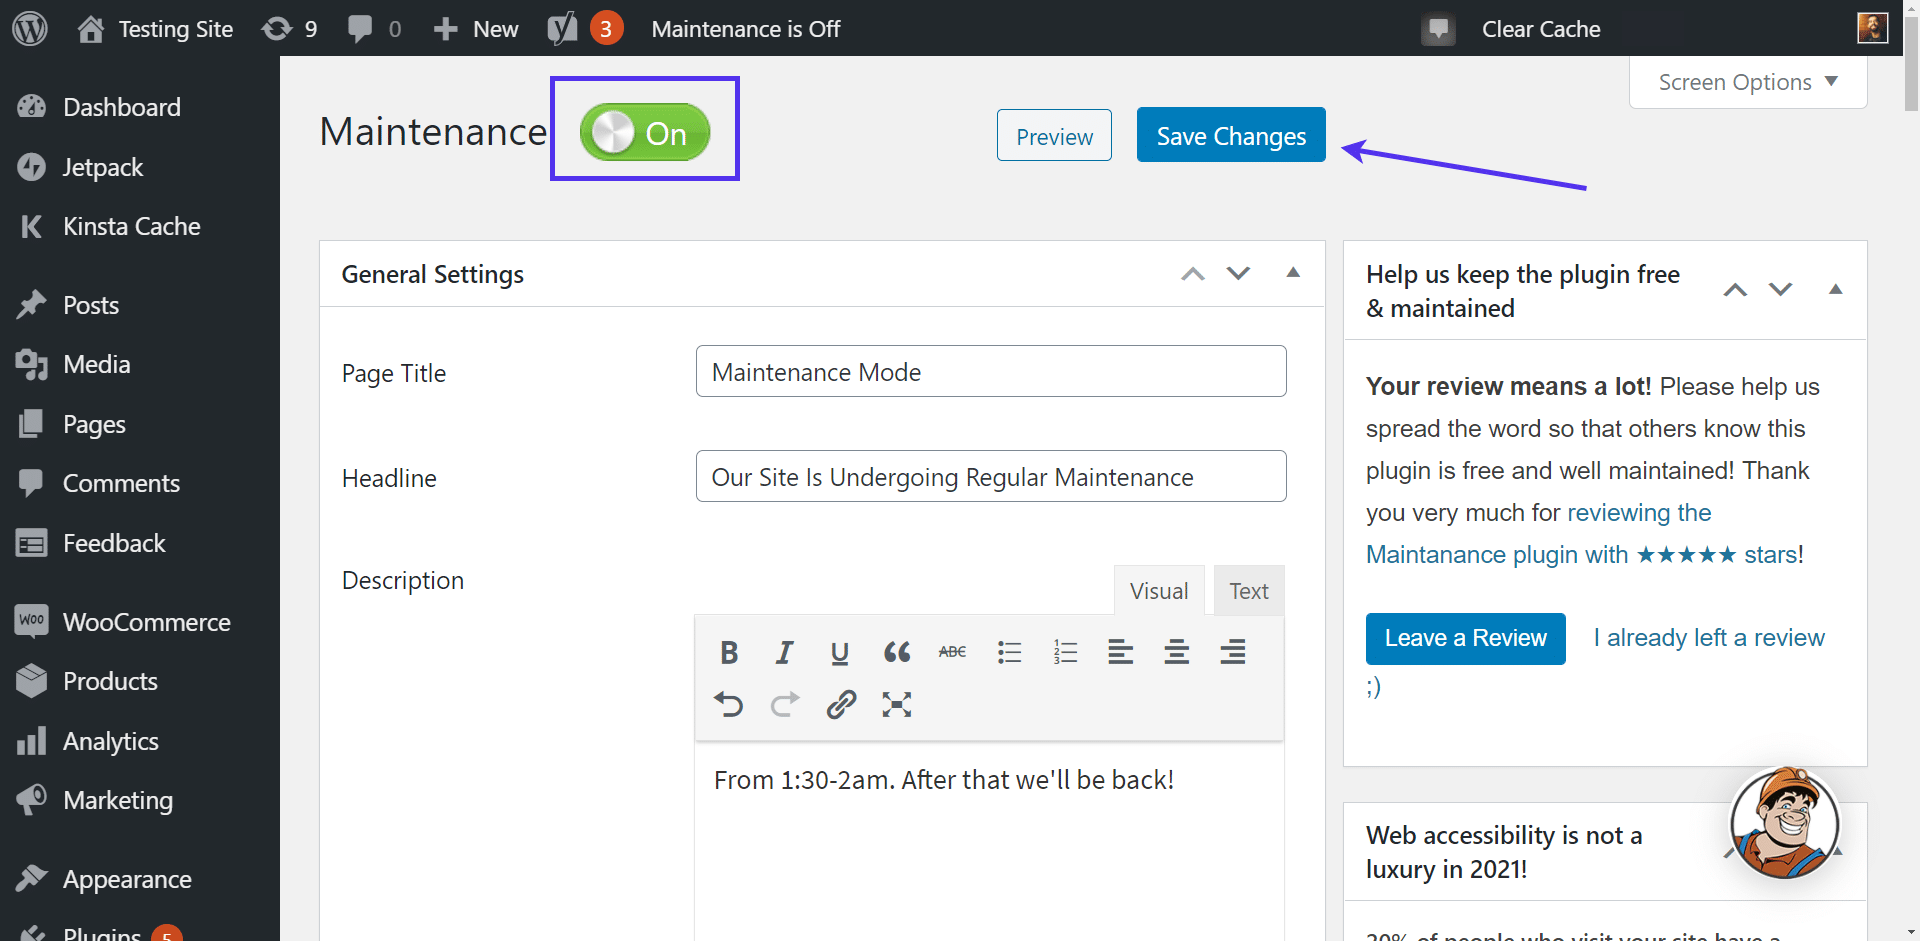 Enabling the maintenance page